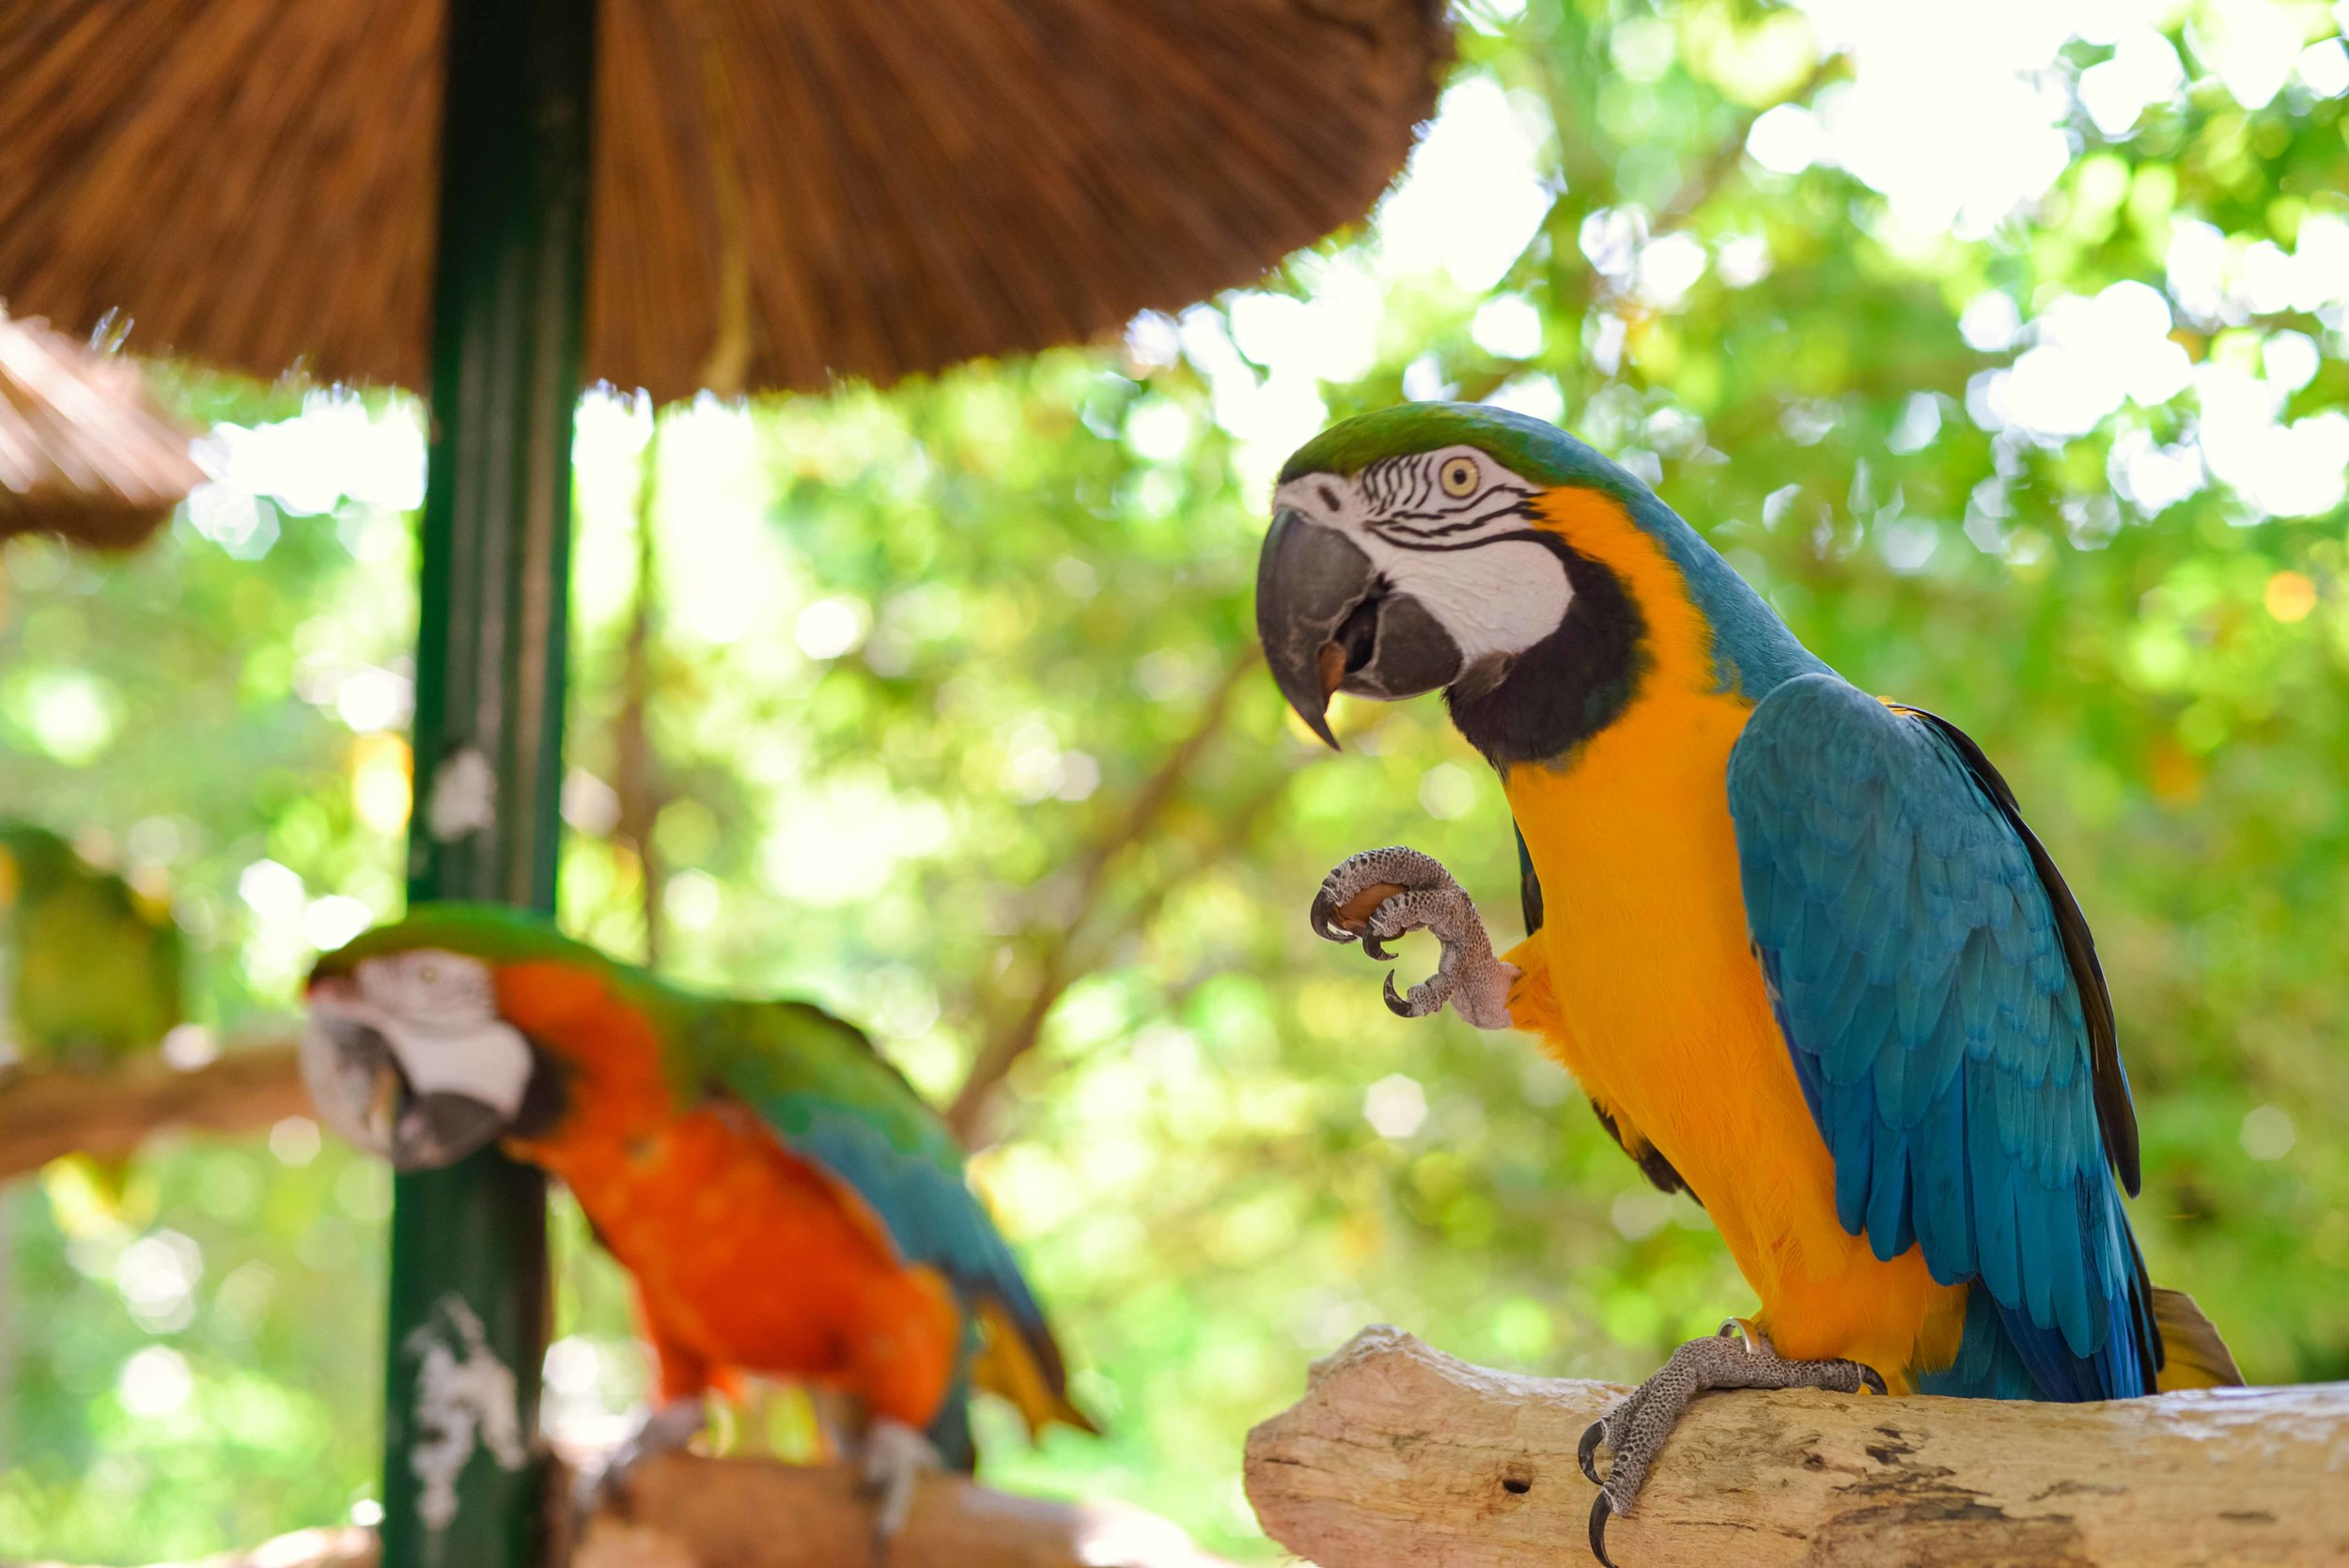 Macaws hanging out at Parrot Mountain in Pigeon Forge, TN